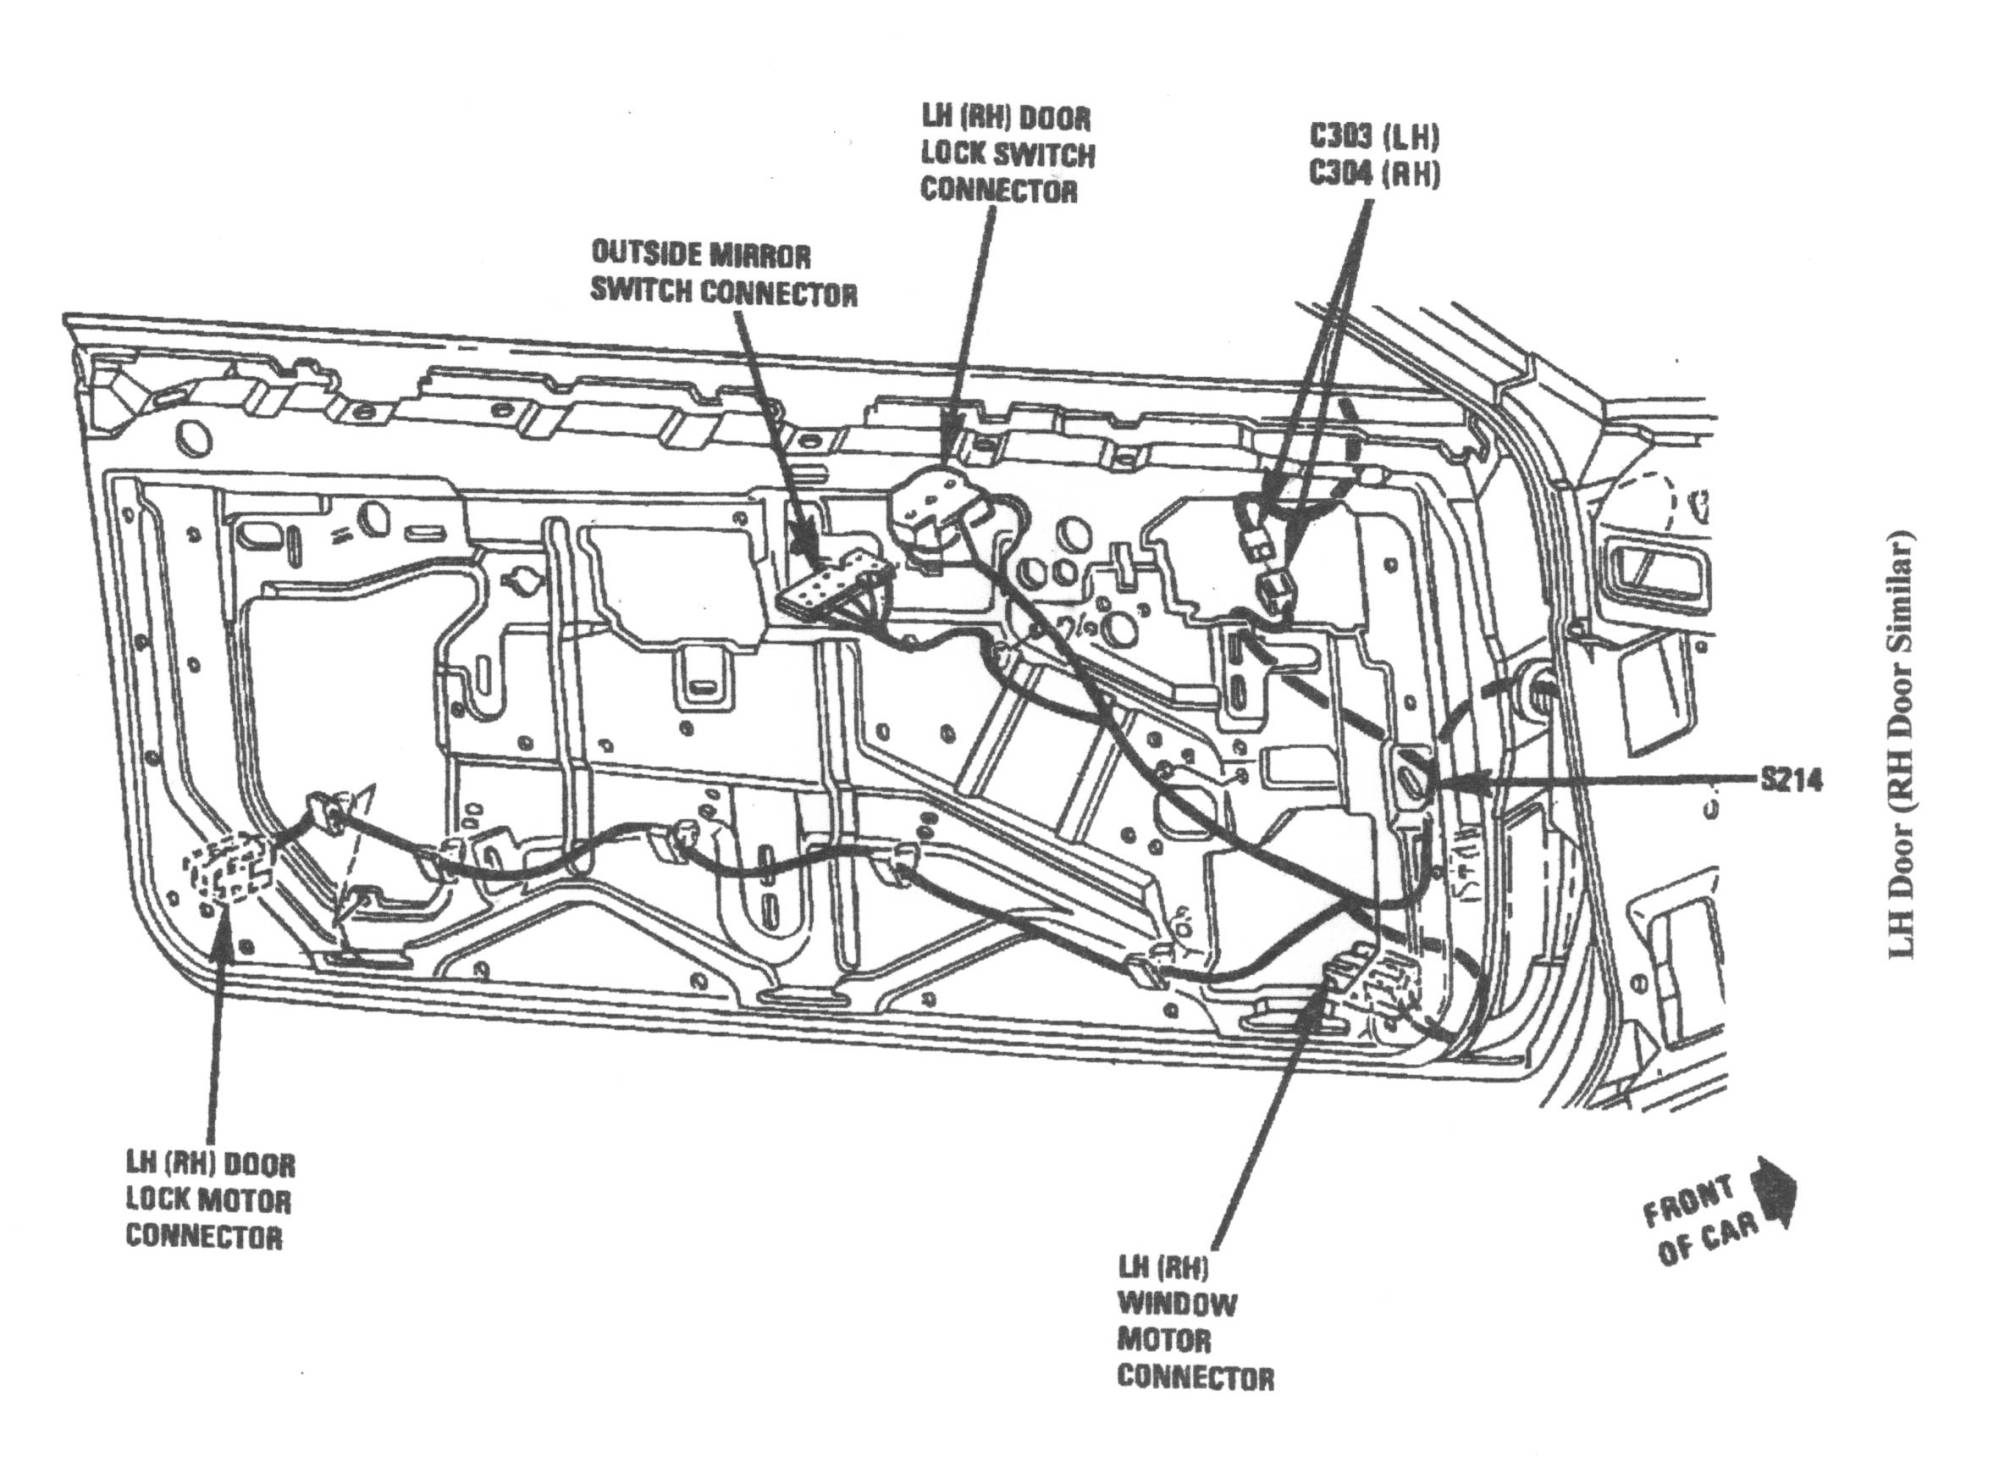 hight resolution of the wiring runs from the back of the door to the front of the door and then through the rubber boot and inside the vehicle under the dash on models without